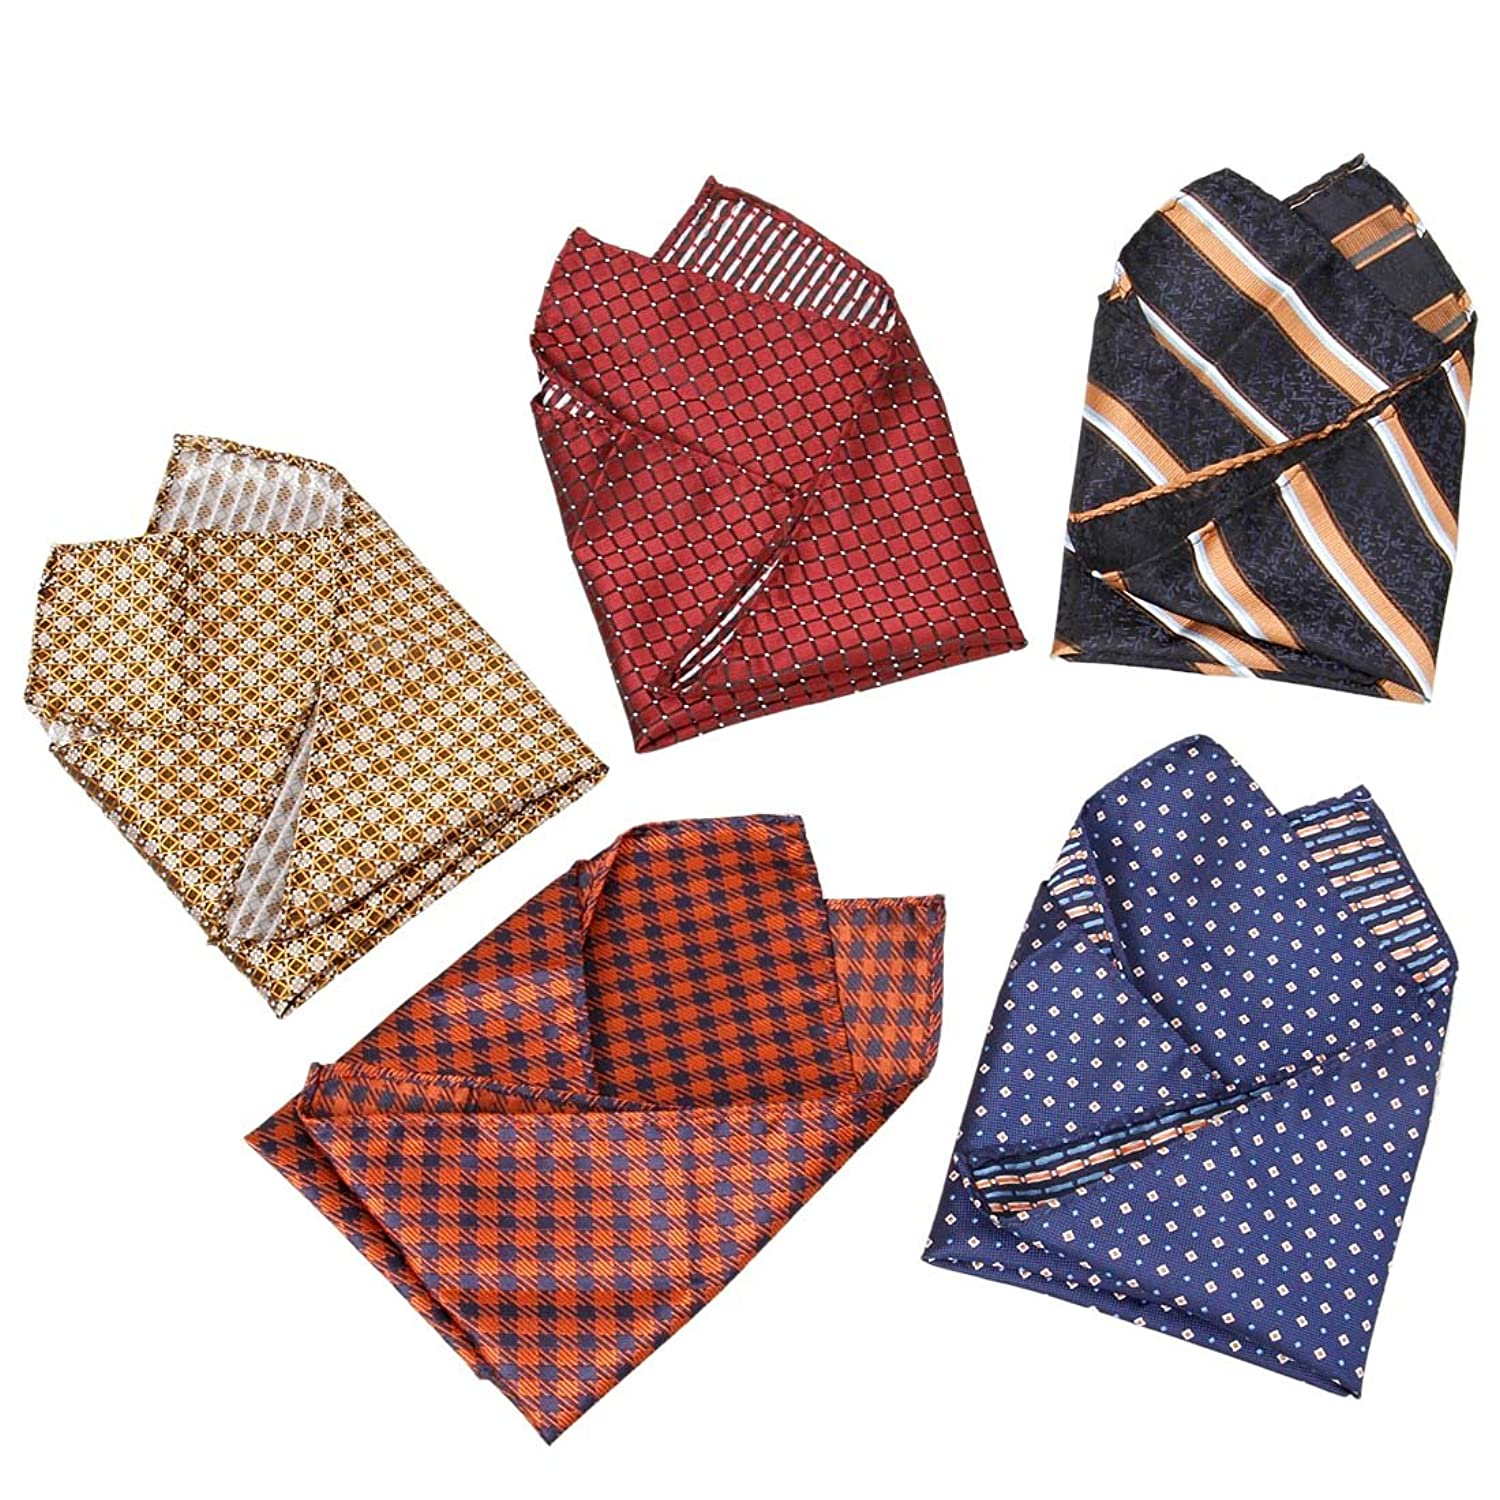 Victorian Men's Accessories – Suspenders, Gloves, Cane, Pocket Watch, Spats  Large Pocket Square Fashion Handkerchief Accessories $9.63 AT vintagedancer.com